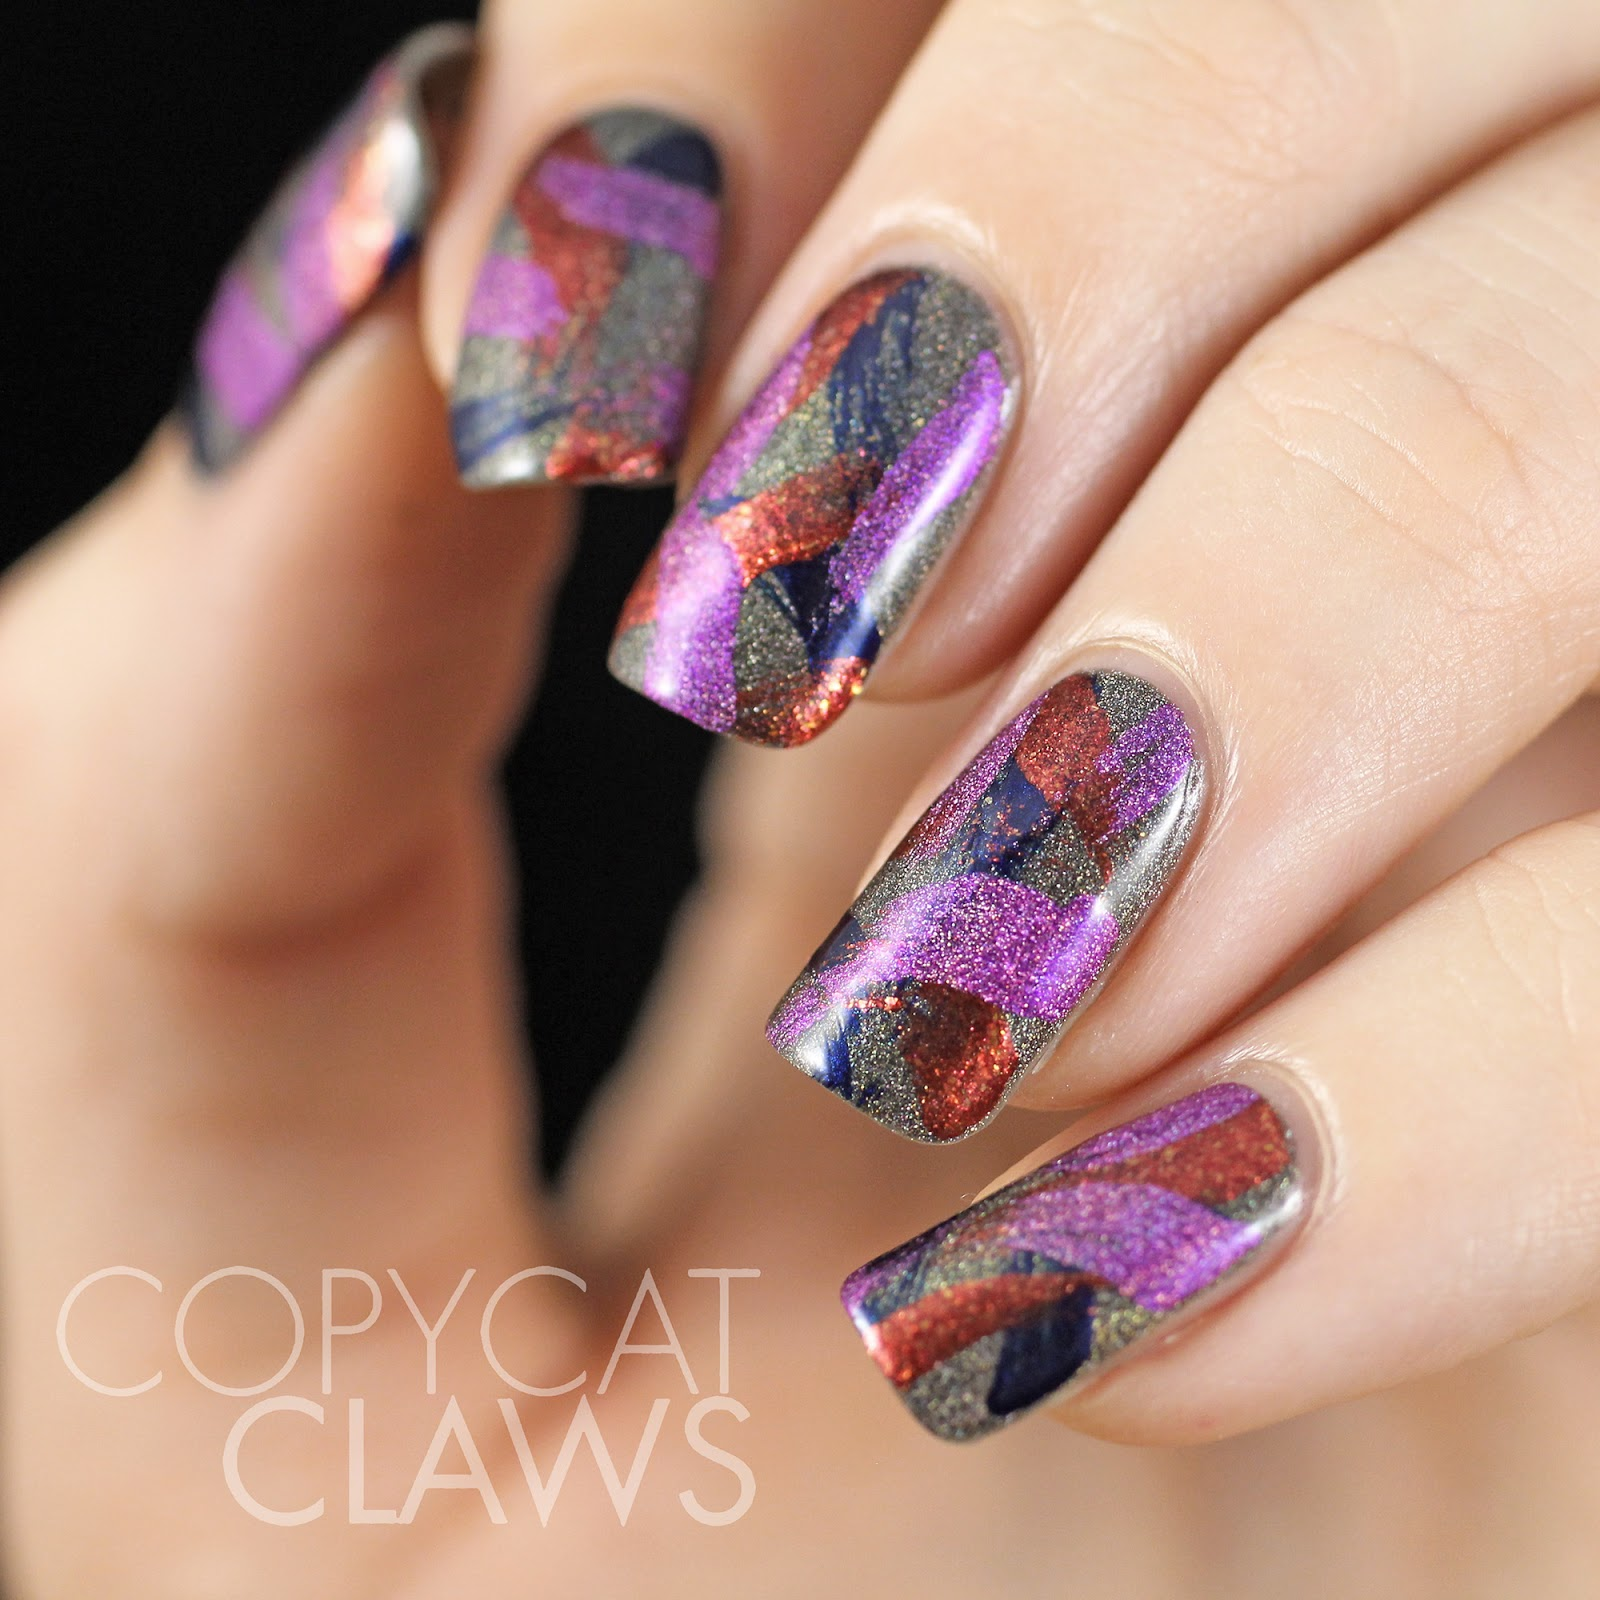 Copycat Claws Blue Color Block Nail Art: Copycat Claws: A England Brush Stroke Nail Art